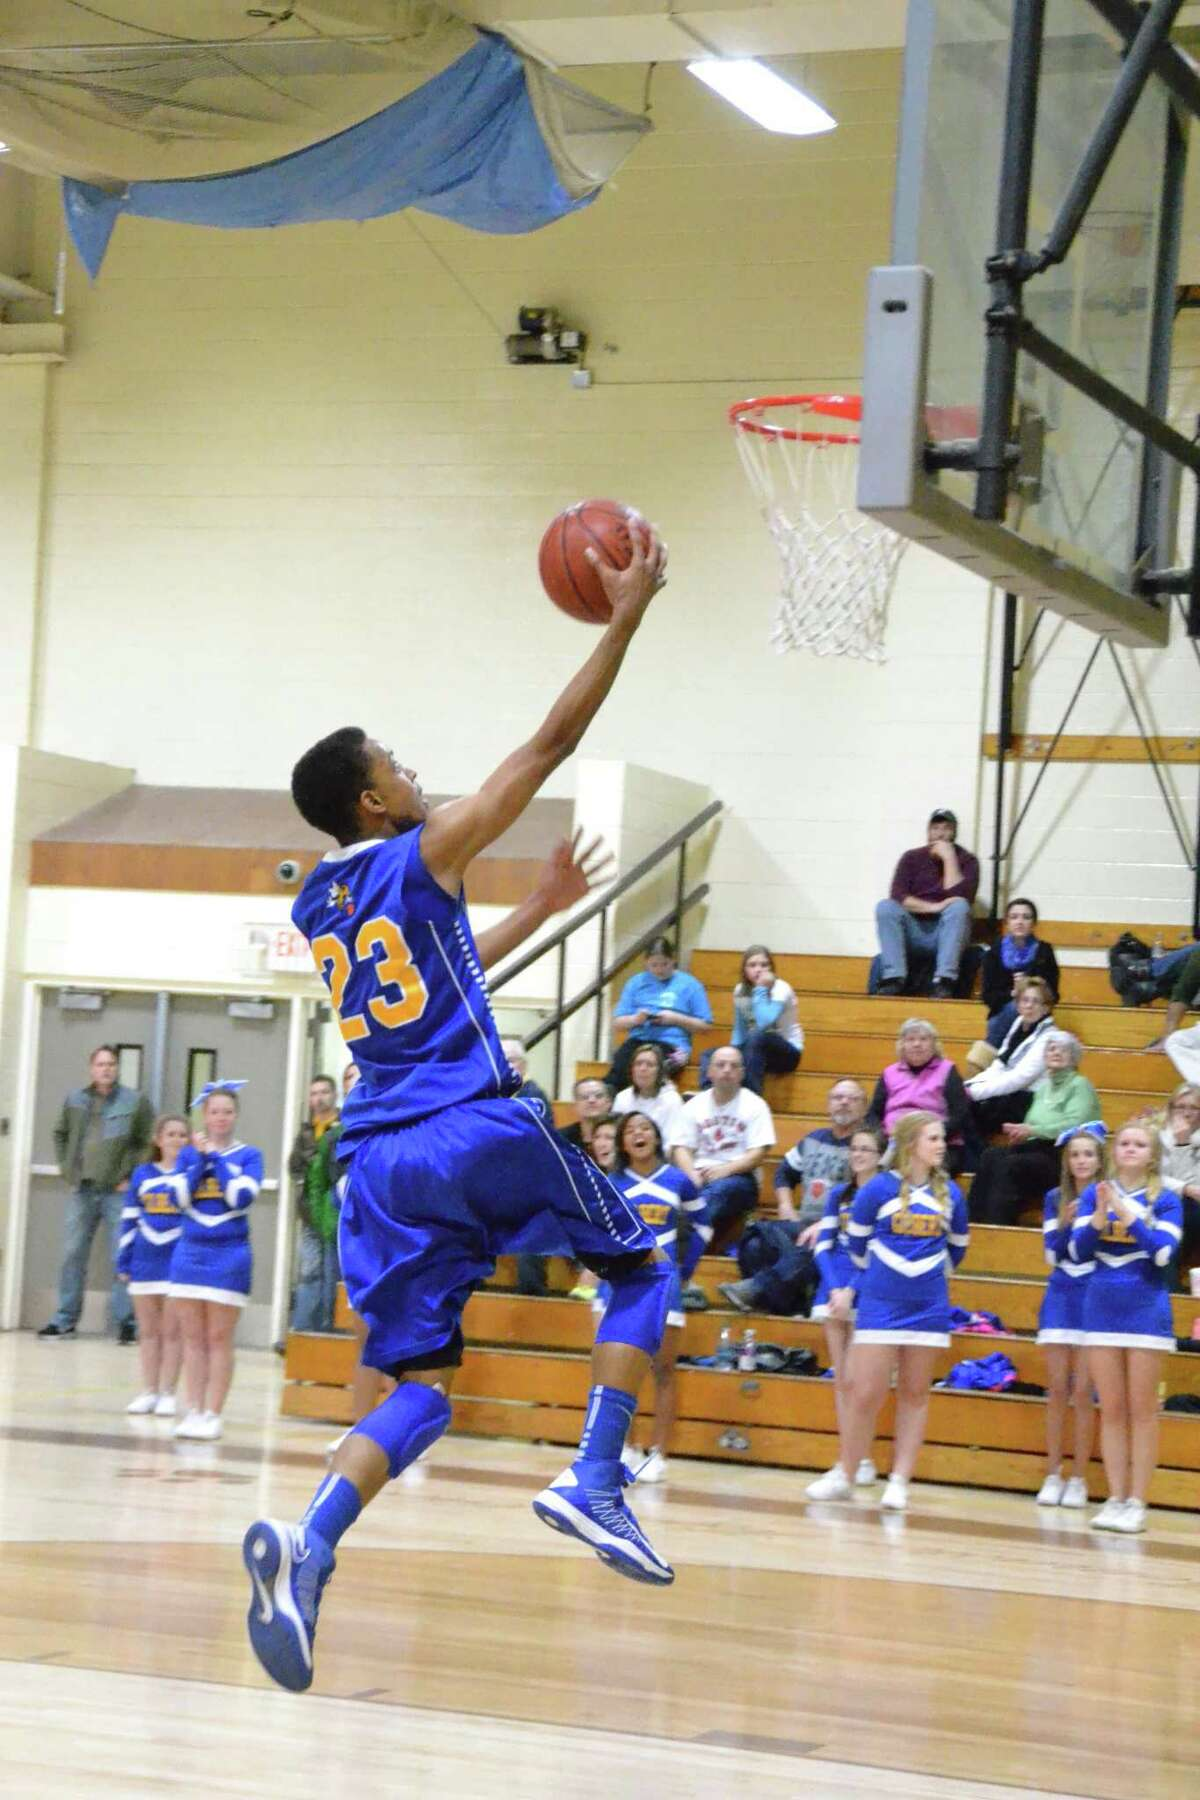 Gilbert's Robert Skinner scores two of his game-high 26 points. Pete Paguaga/Register Citizen